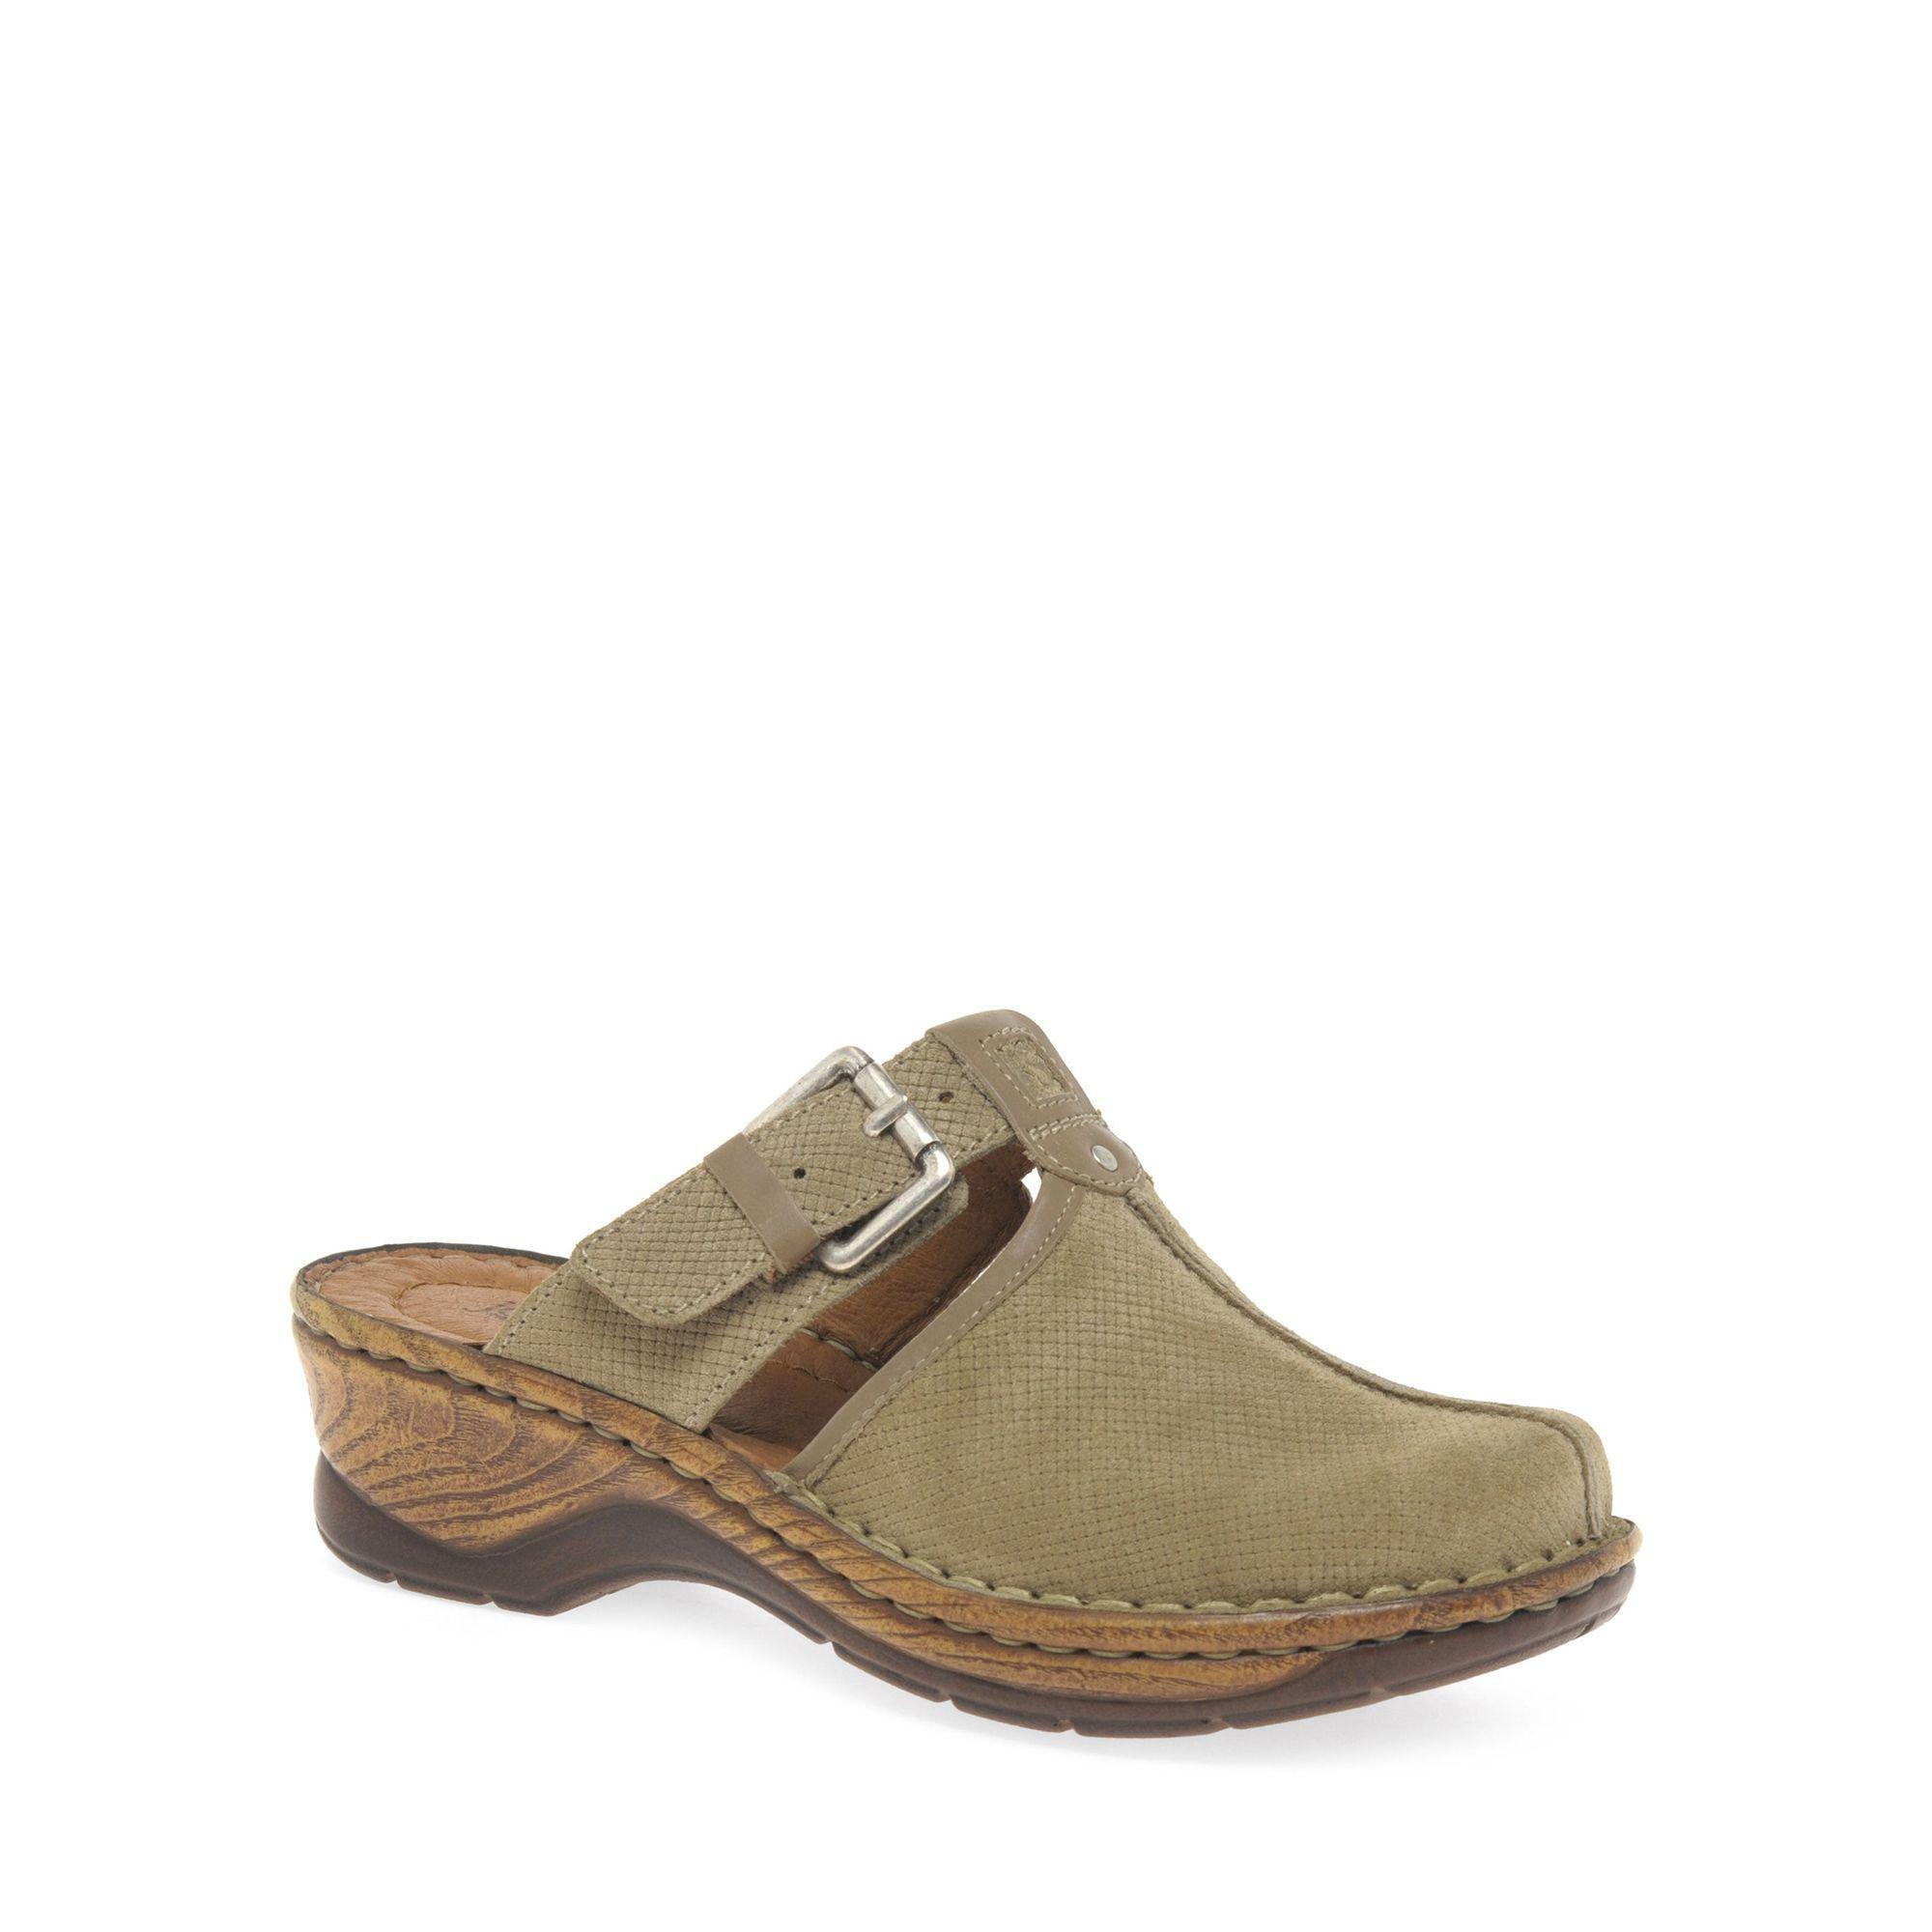 cheap footlocker Cream 'Catalonia 17' Womens T Strap Mules free shipping best store to get authentic online amazon online sale Cheapest laBMc90KTR